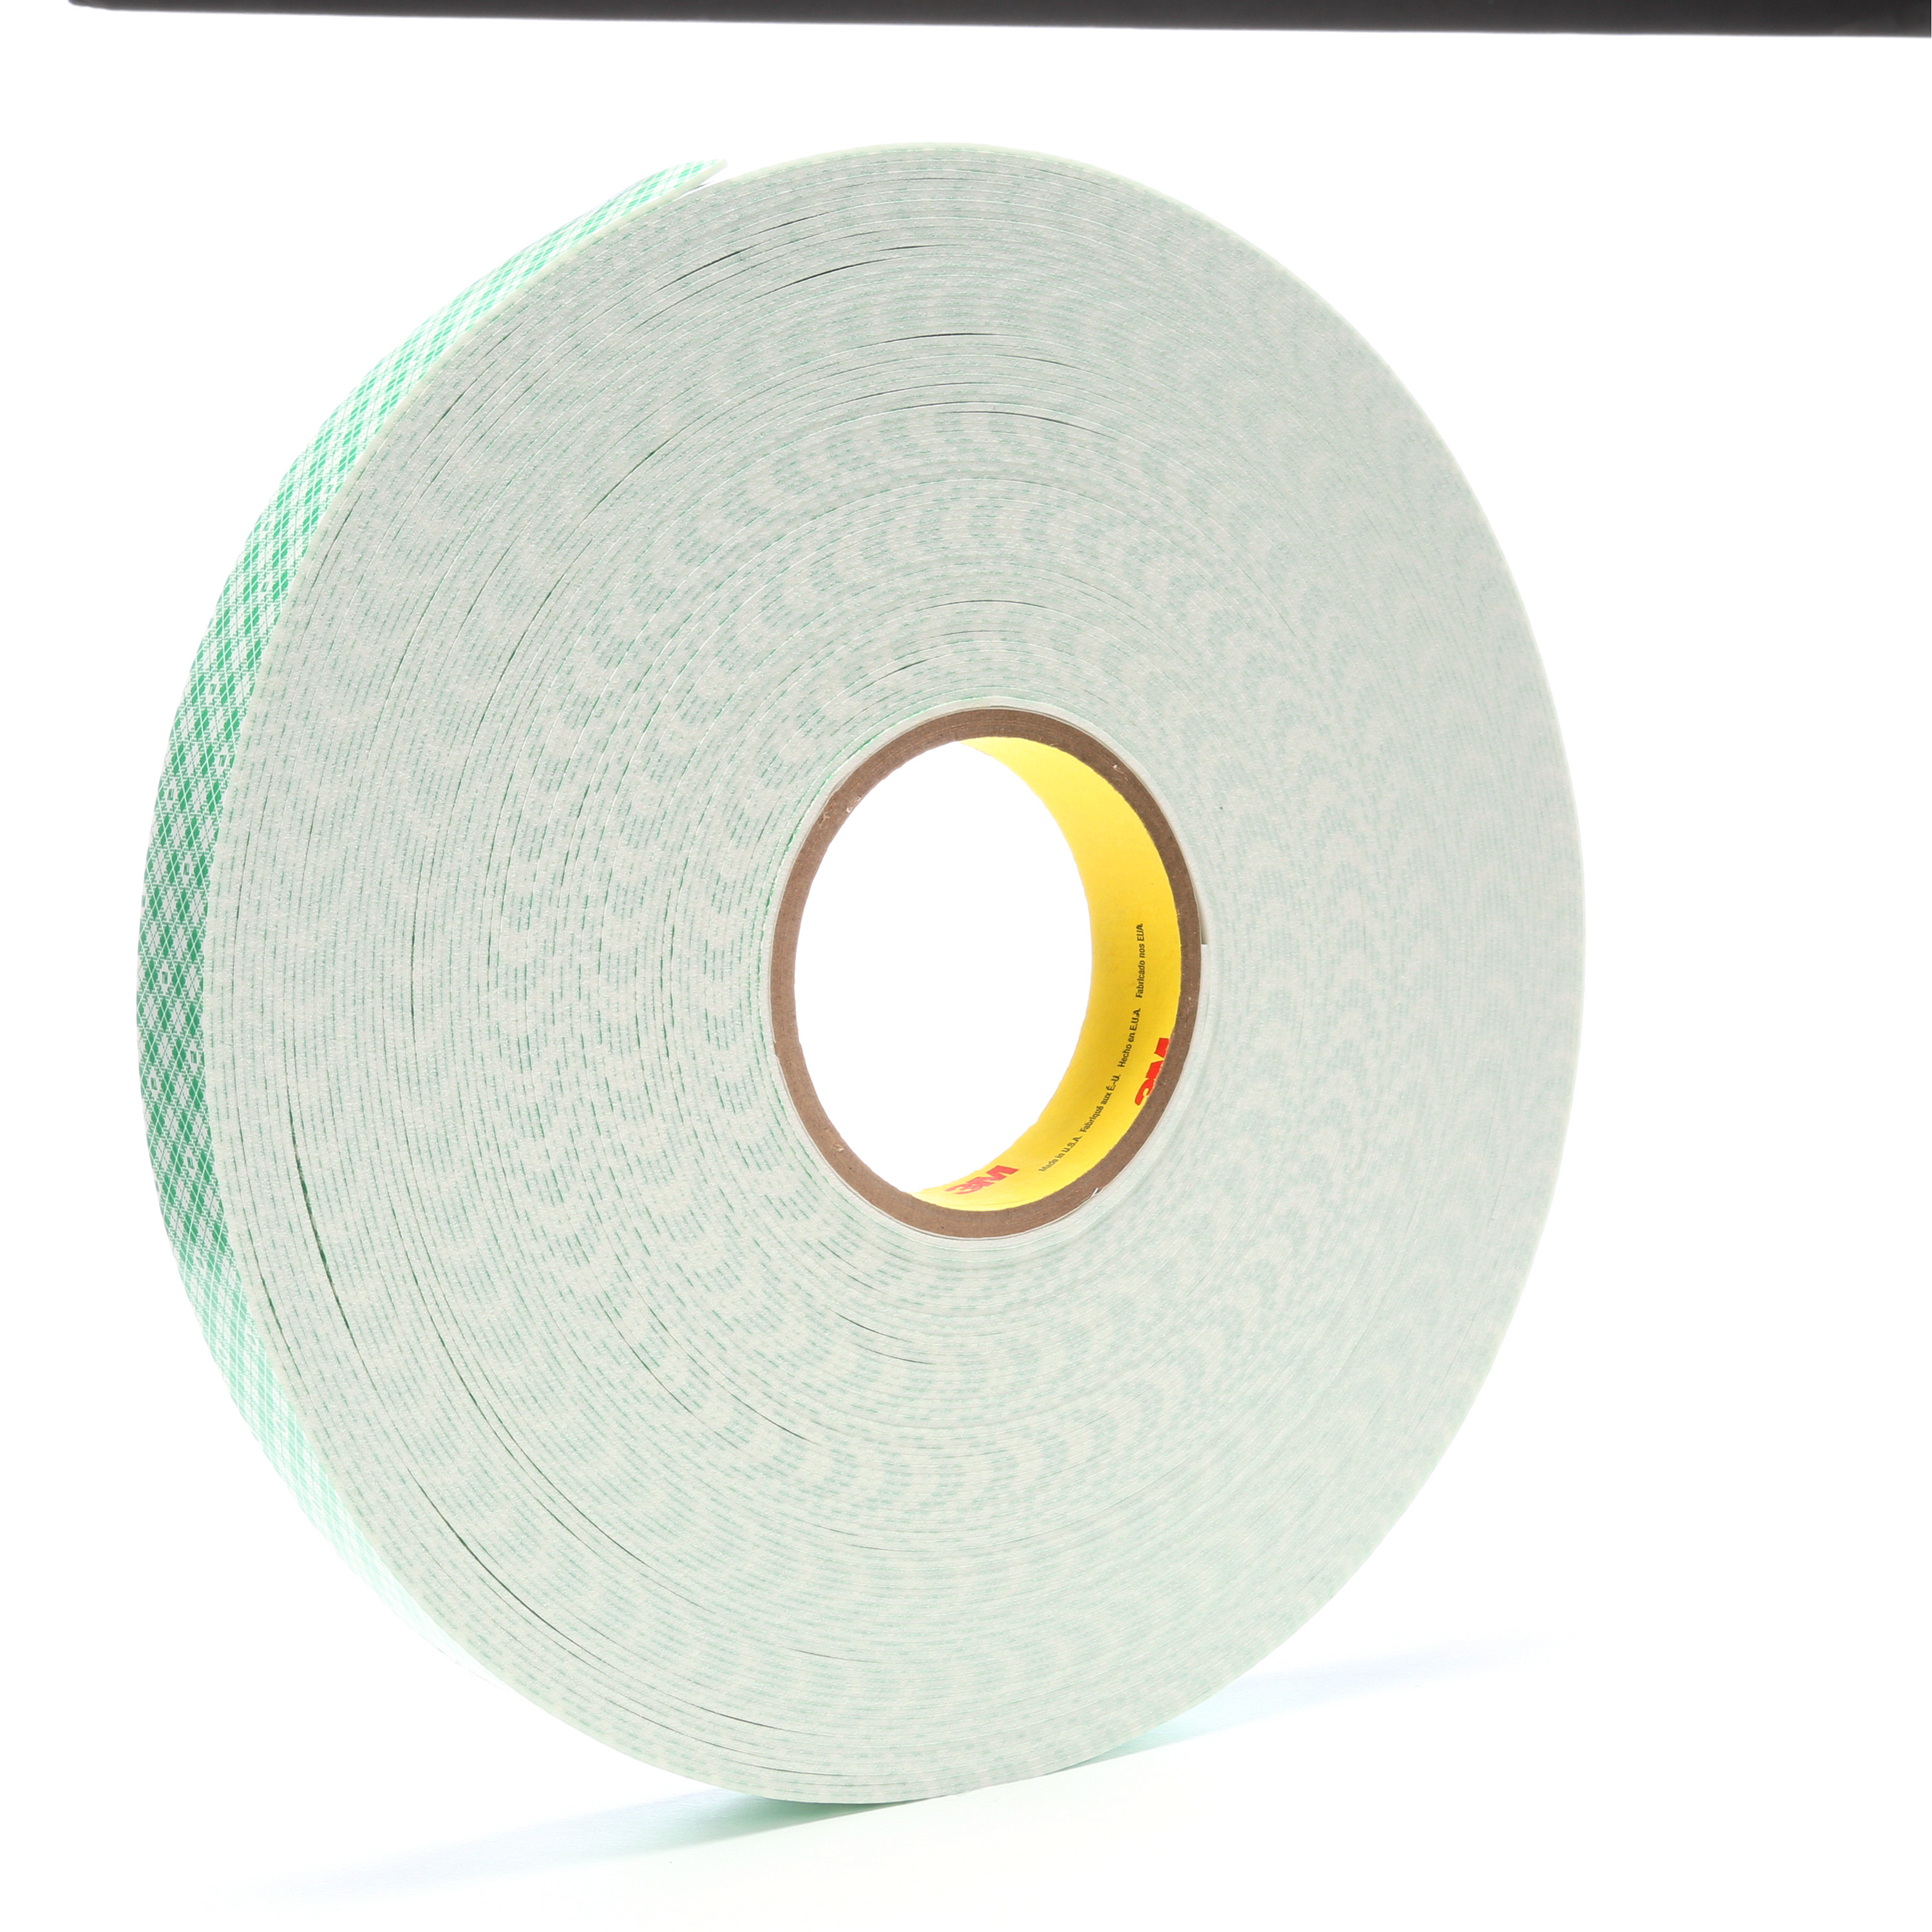 3M™ Double Coated Urethane Foam Tape 4016, Off White, 1 in x 36 yd, 62 mil, 9 rolls per case